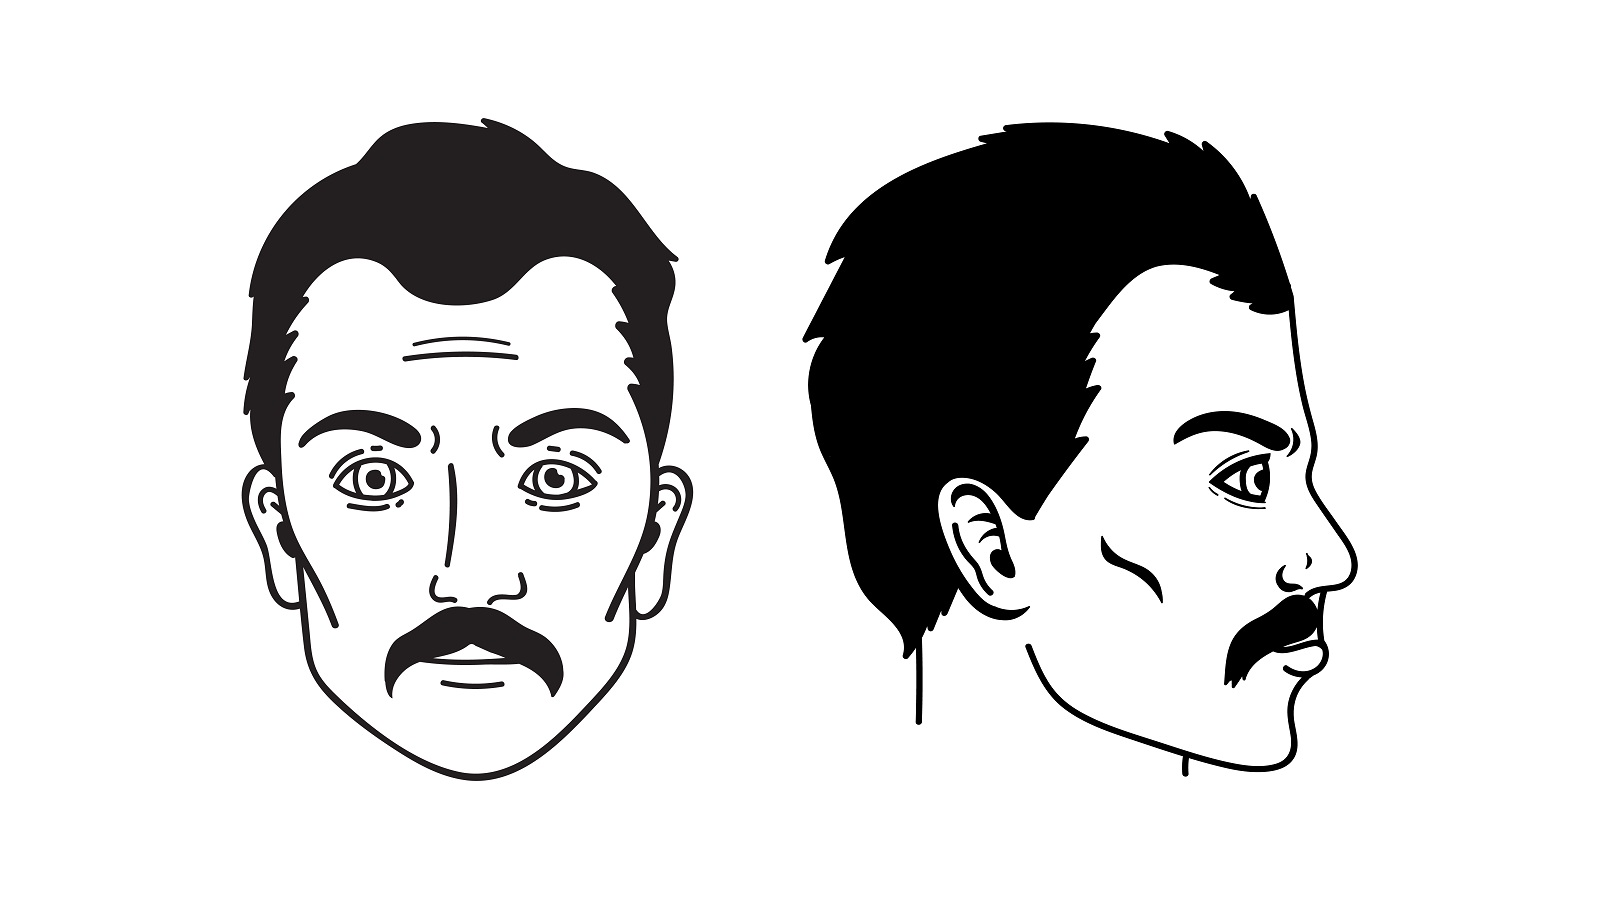 The Dallas Mustache, a facial hair style